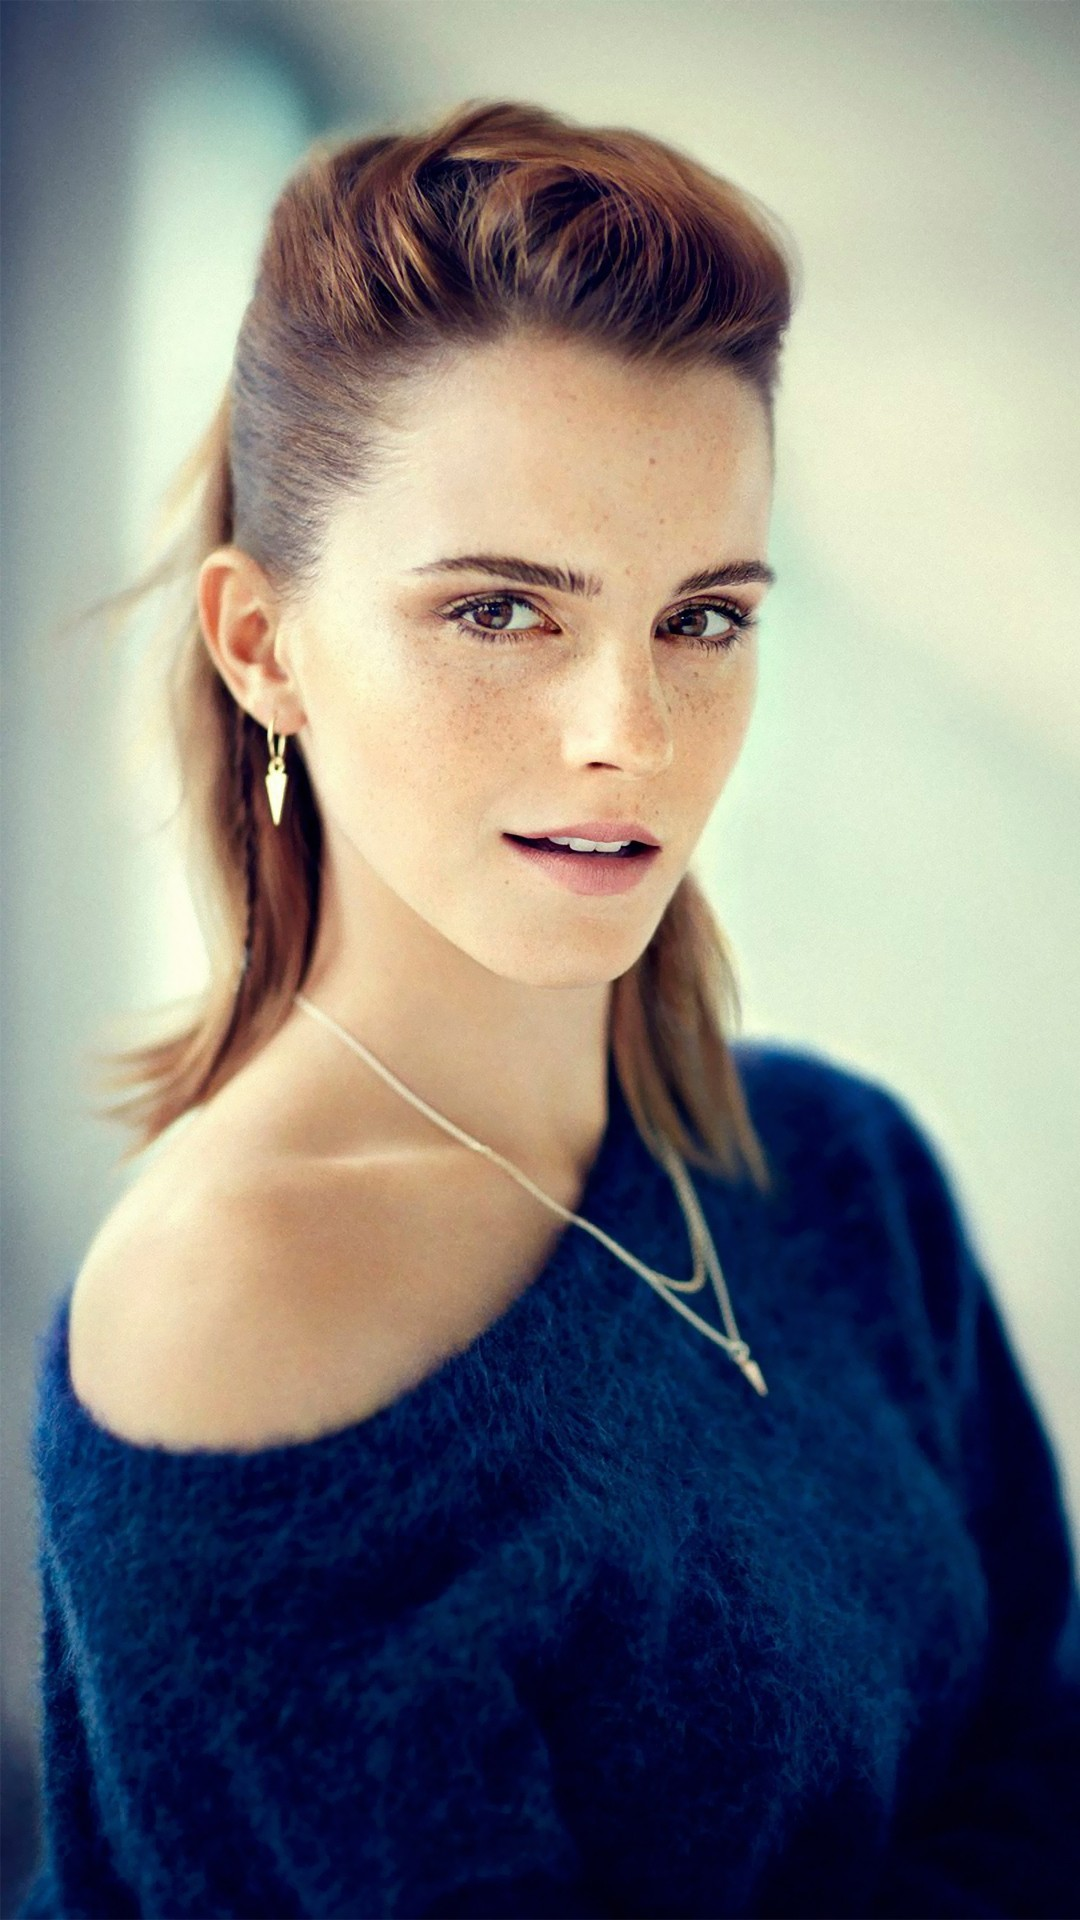 Emma Watson beauty 1080x1920 wallpaper